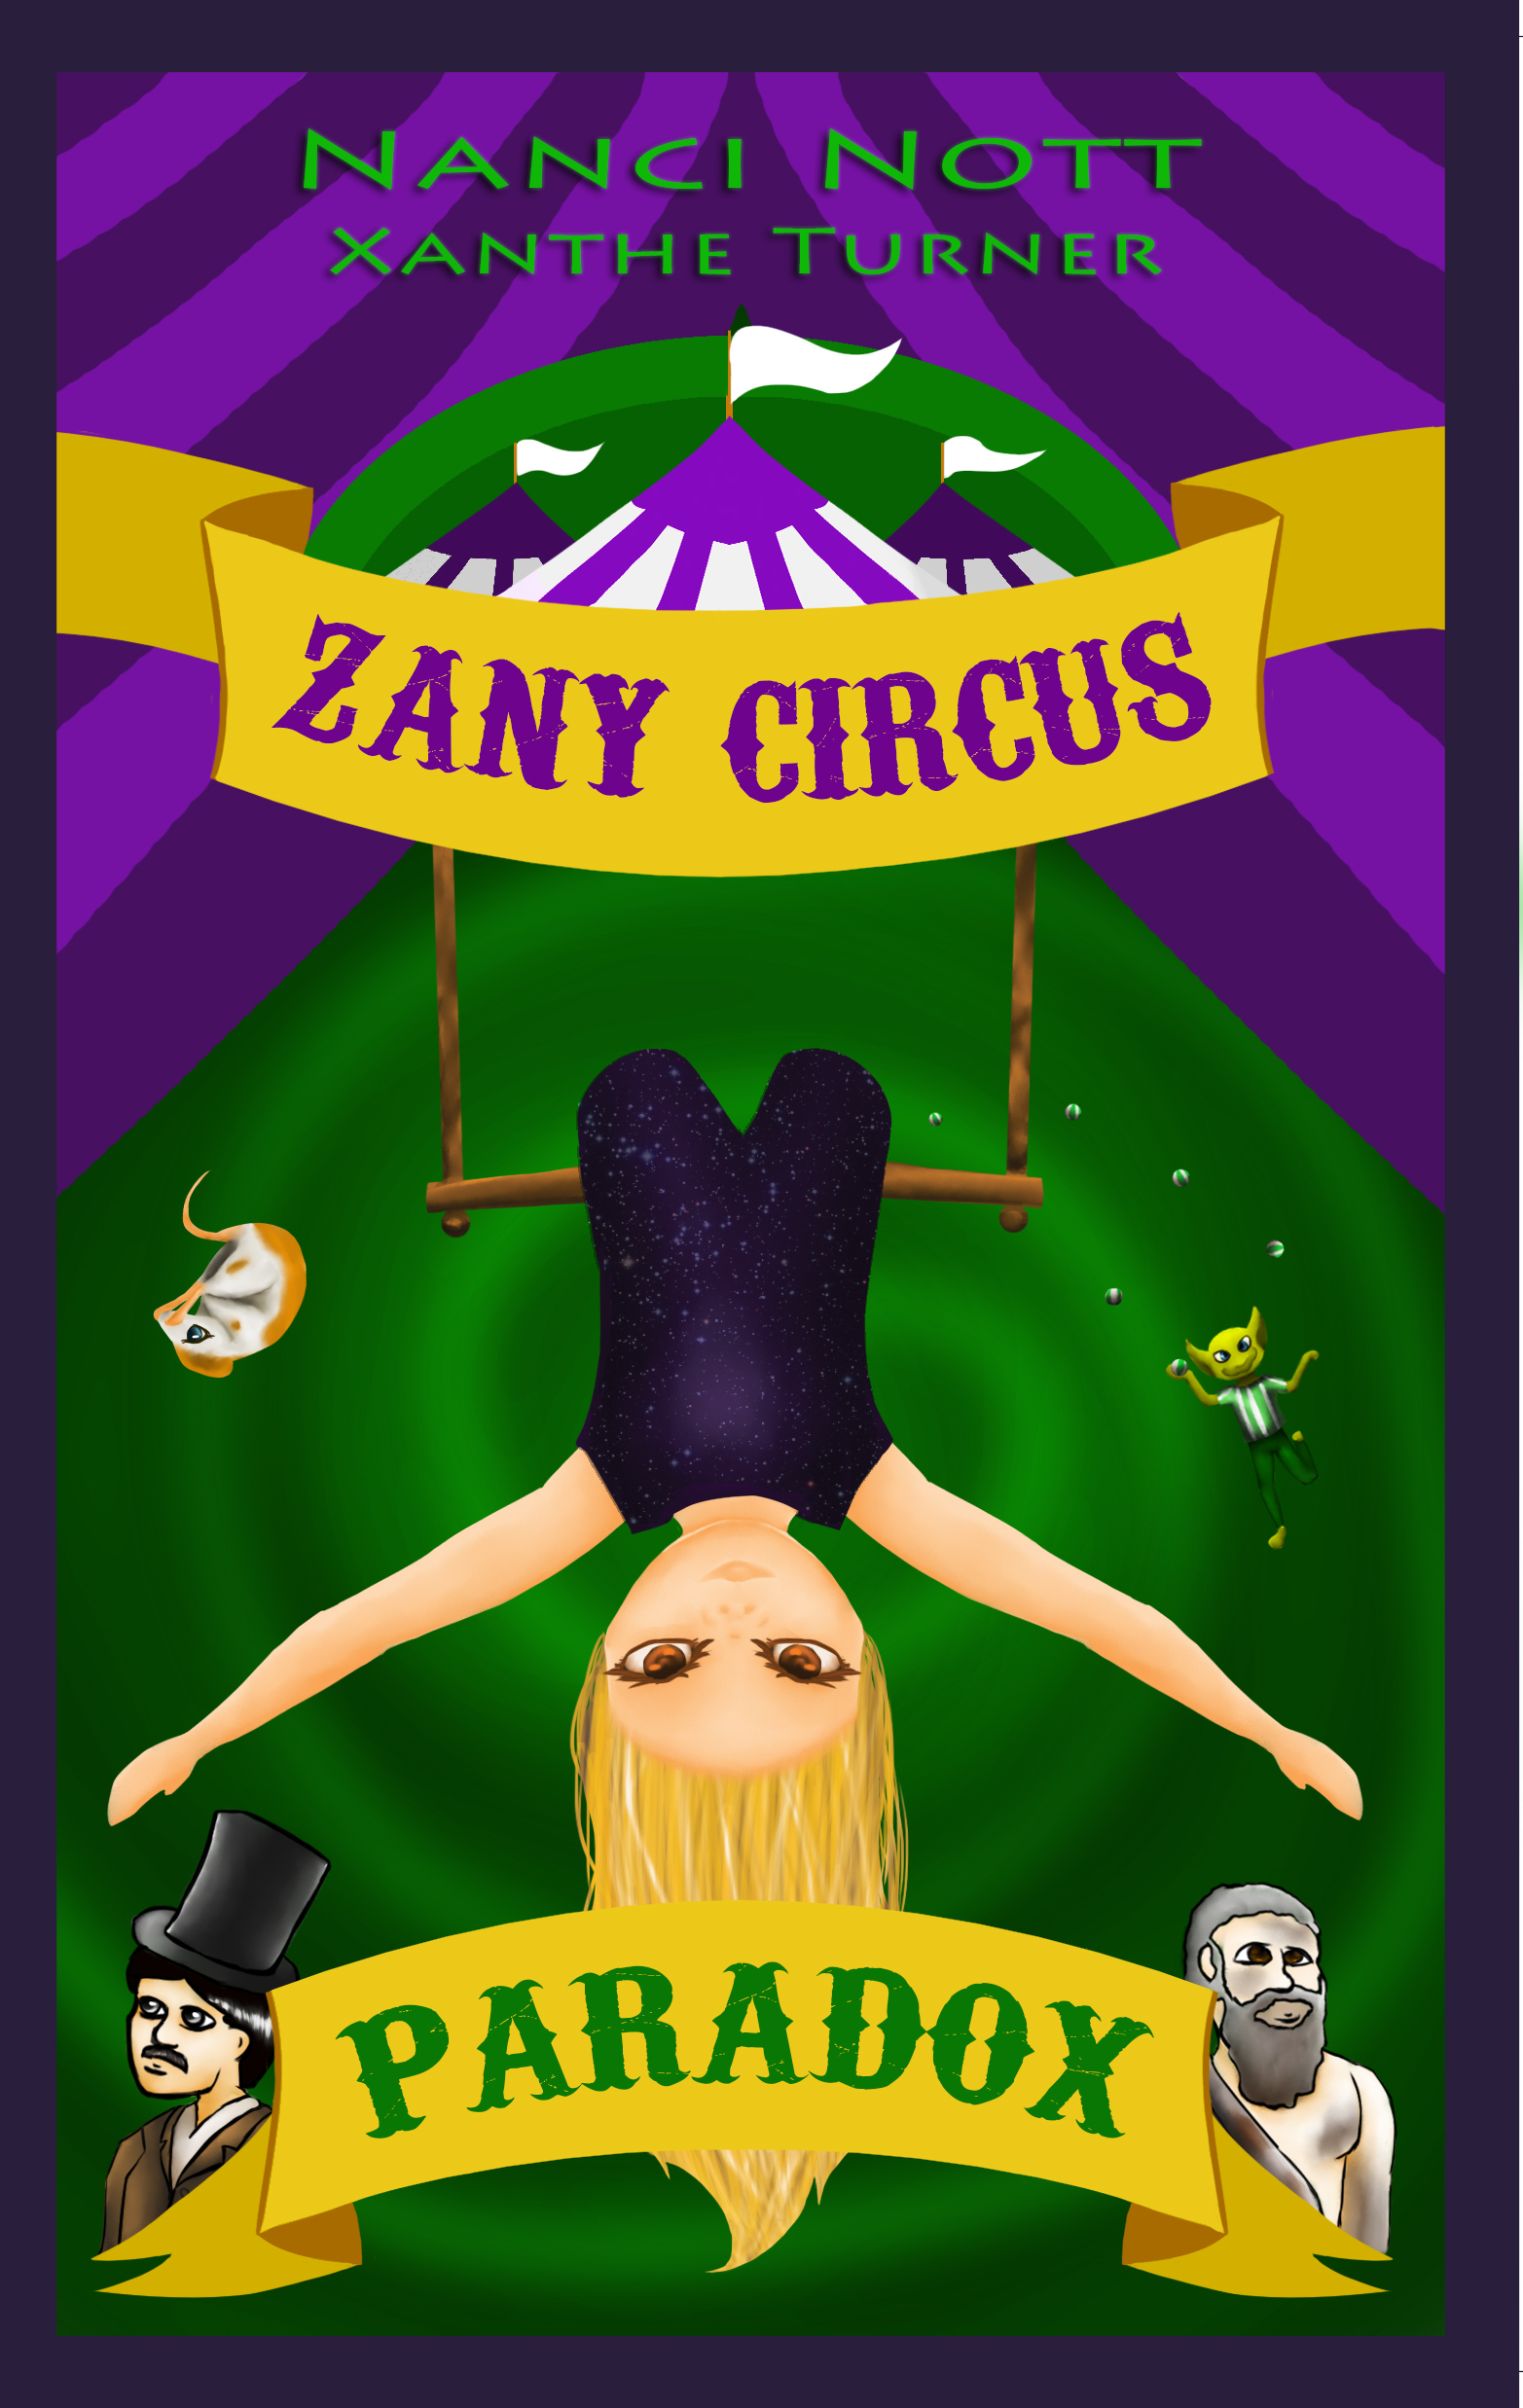 Zany Circus: Paradox by Nanci Nott and Xanthe Turner